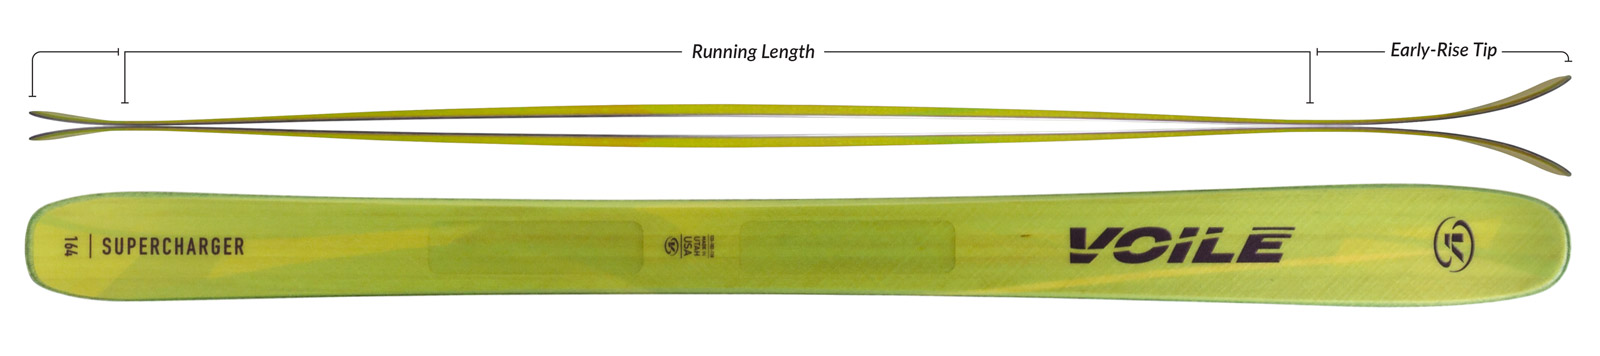 Voile Women's SuperCharger Skis Camber Profile